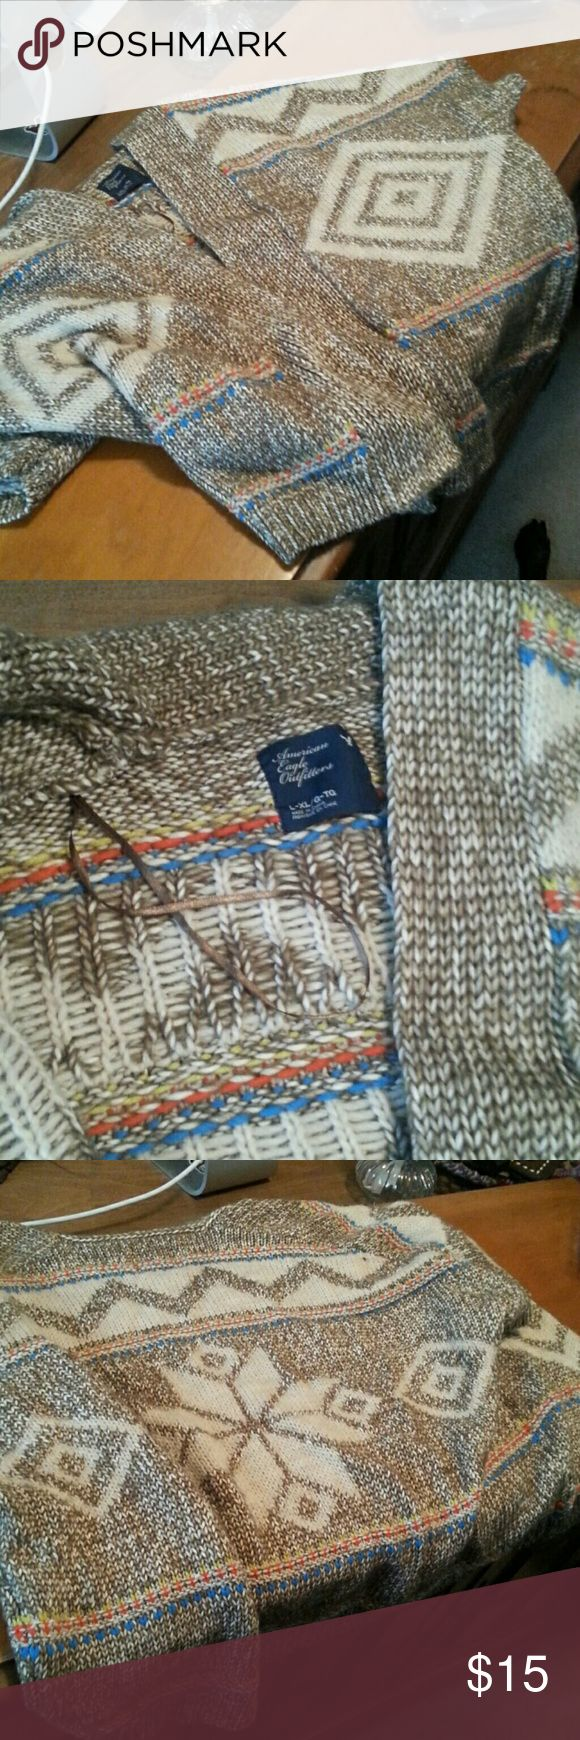 Tribal Sweater Kind of heavy. Super soft. No holes or runs. American Eagle Outfitters Sweaters Cardigans